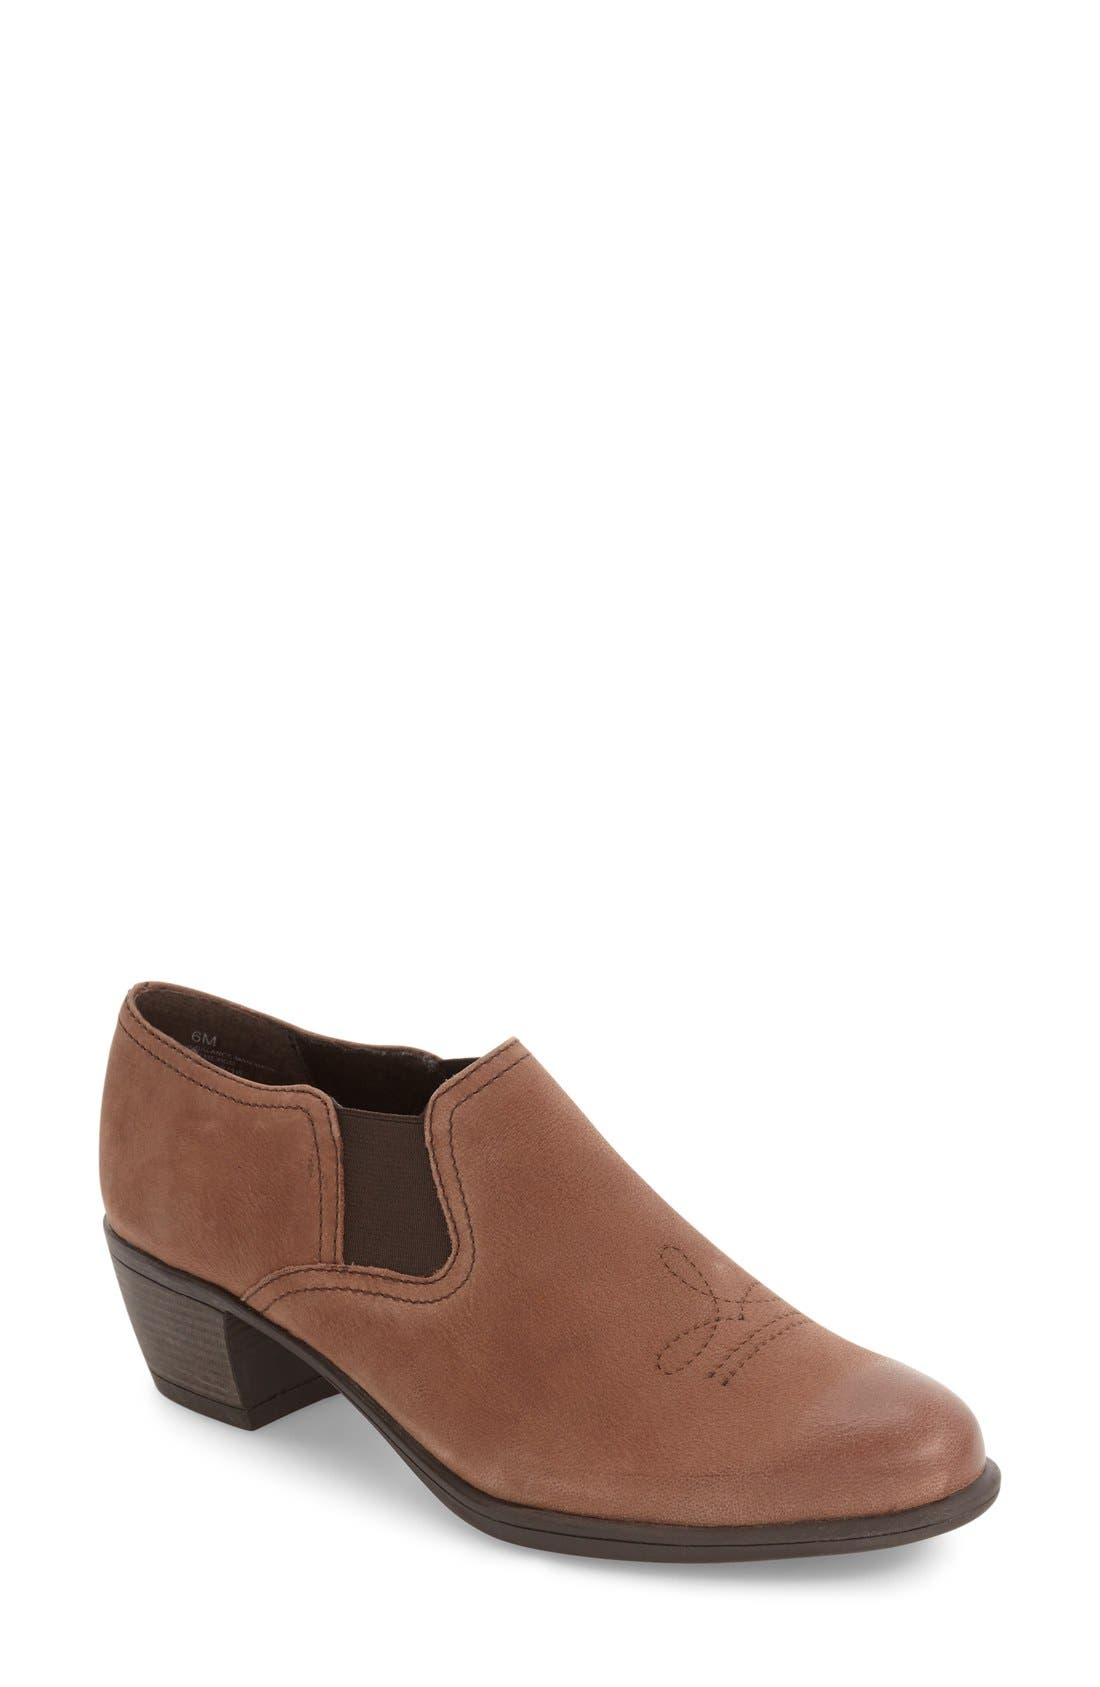 Main Image - Munro Silverton Water Resistant Ankle Bootie (Women)